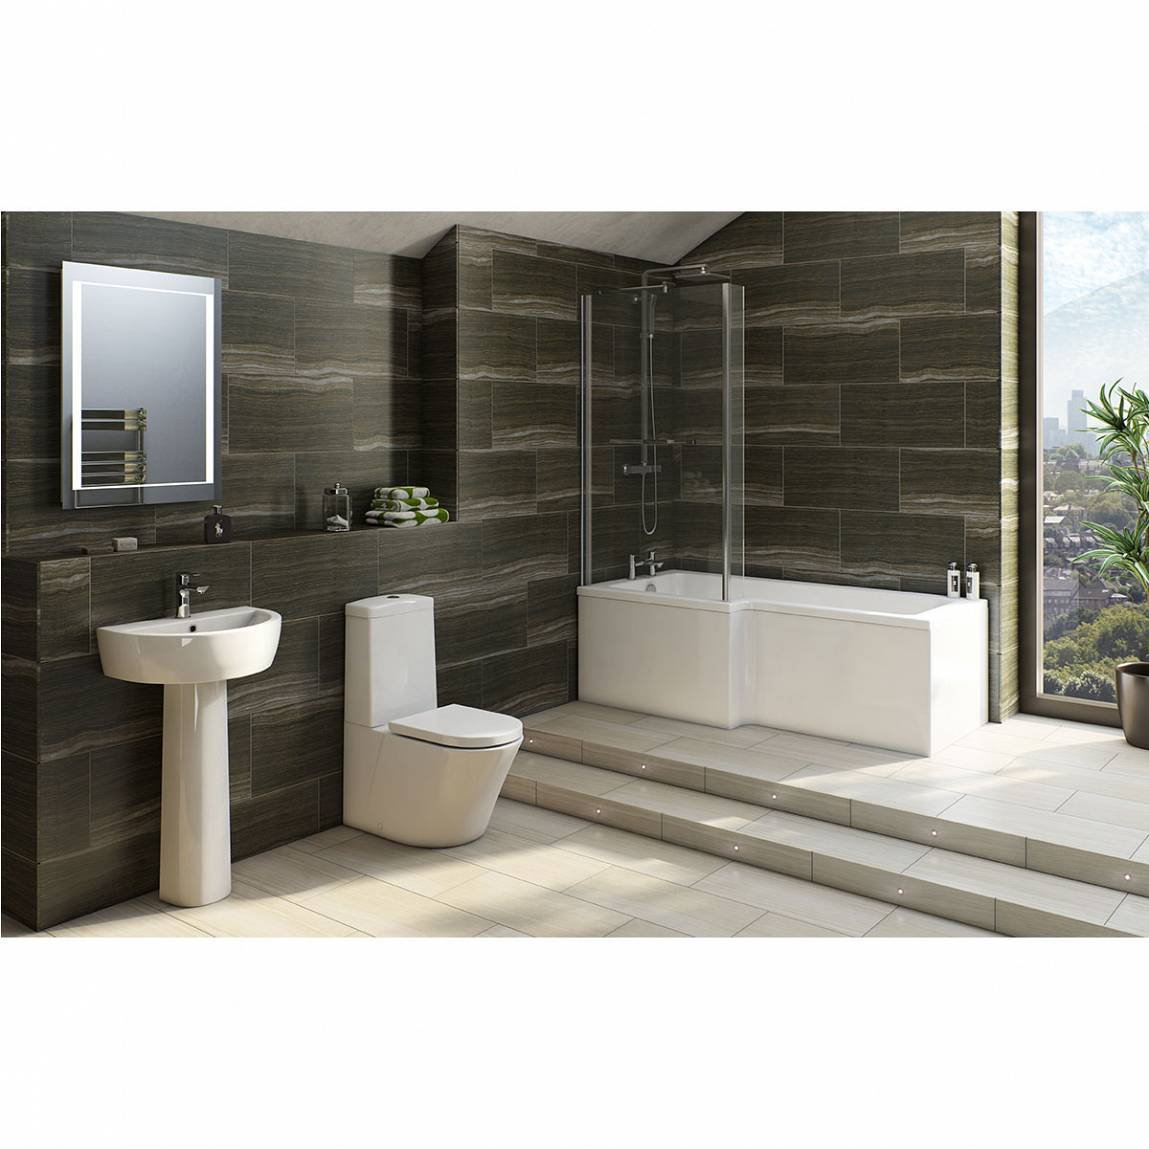 arc bathroom suite with boston 1700 x 850 shower bath lh 1700 shower bath b shaped with front panel and screen left